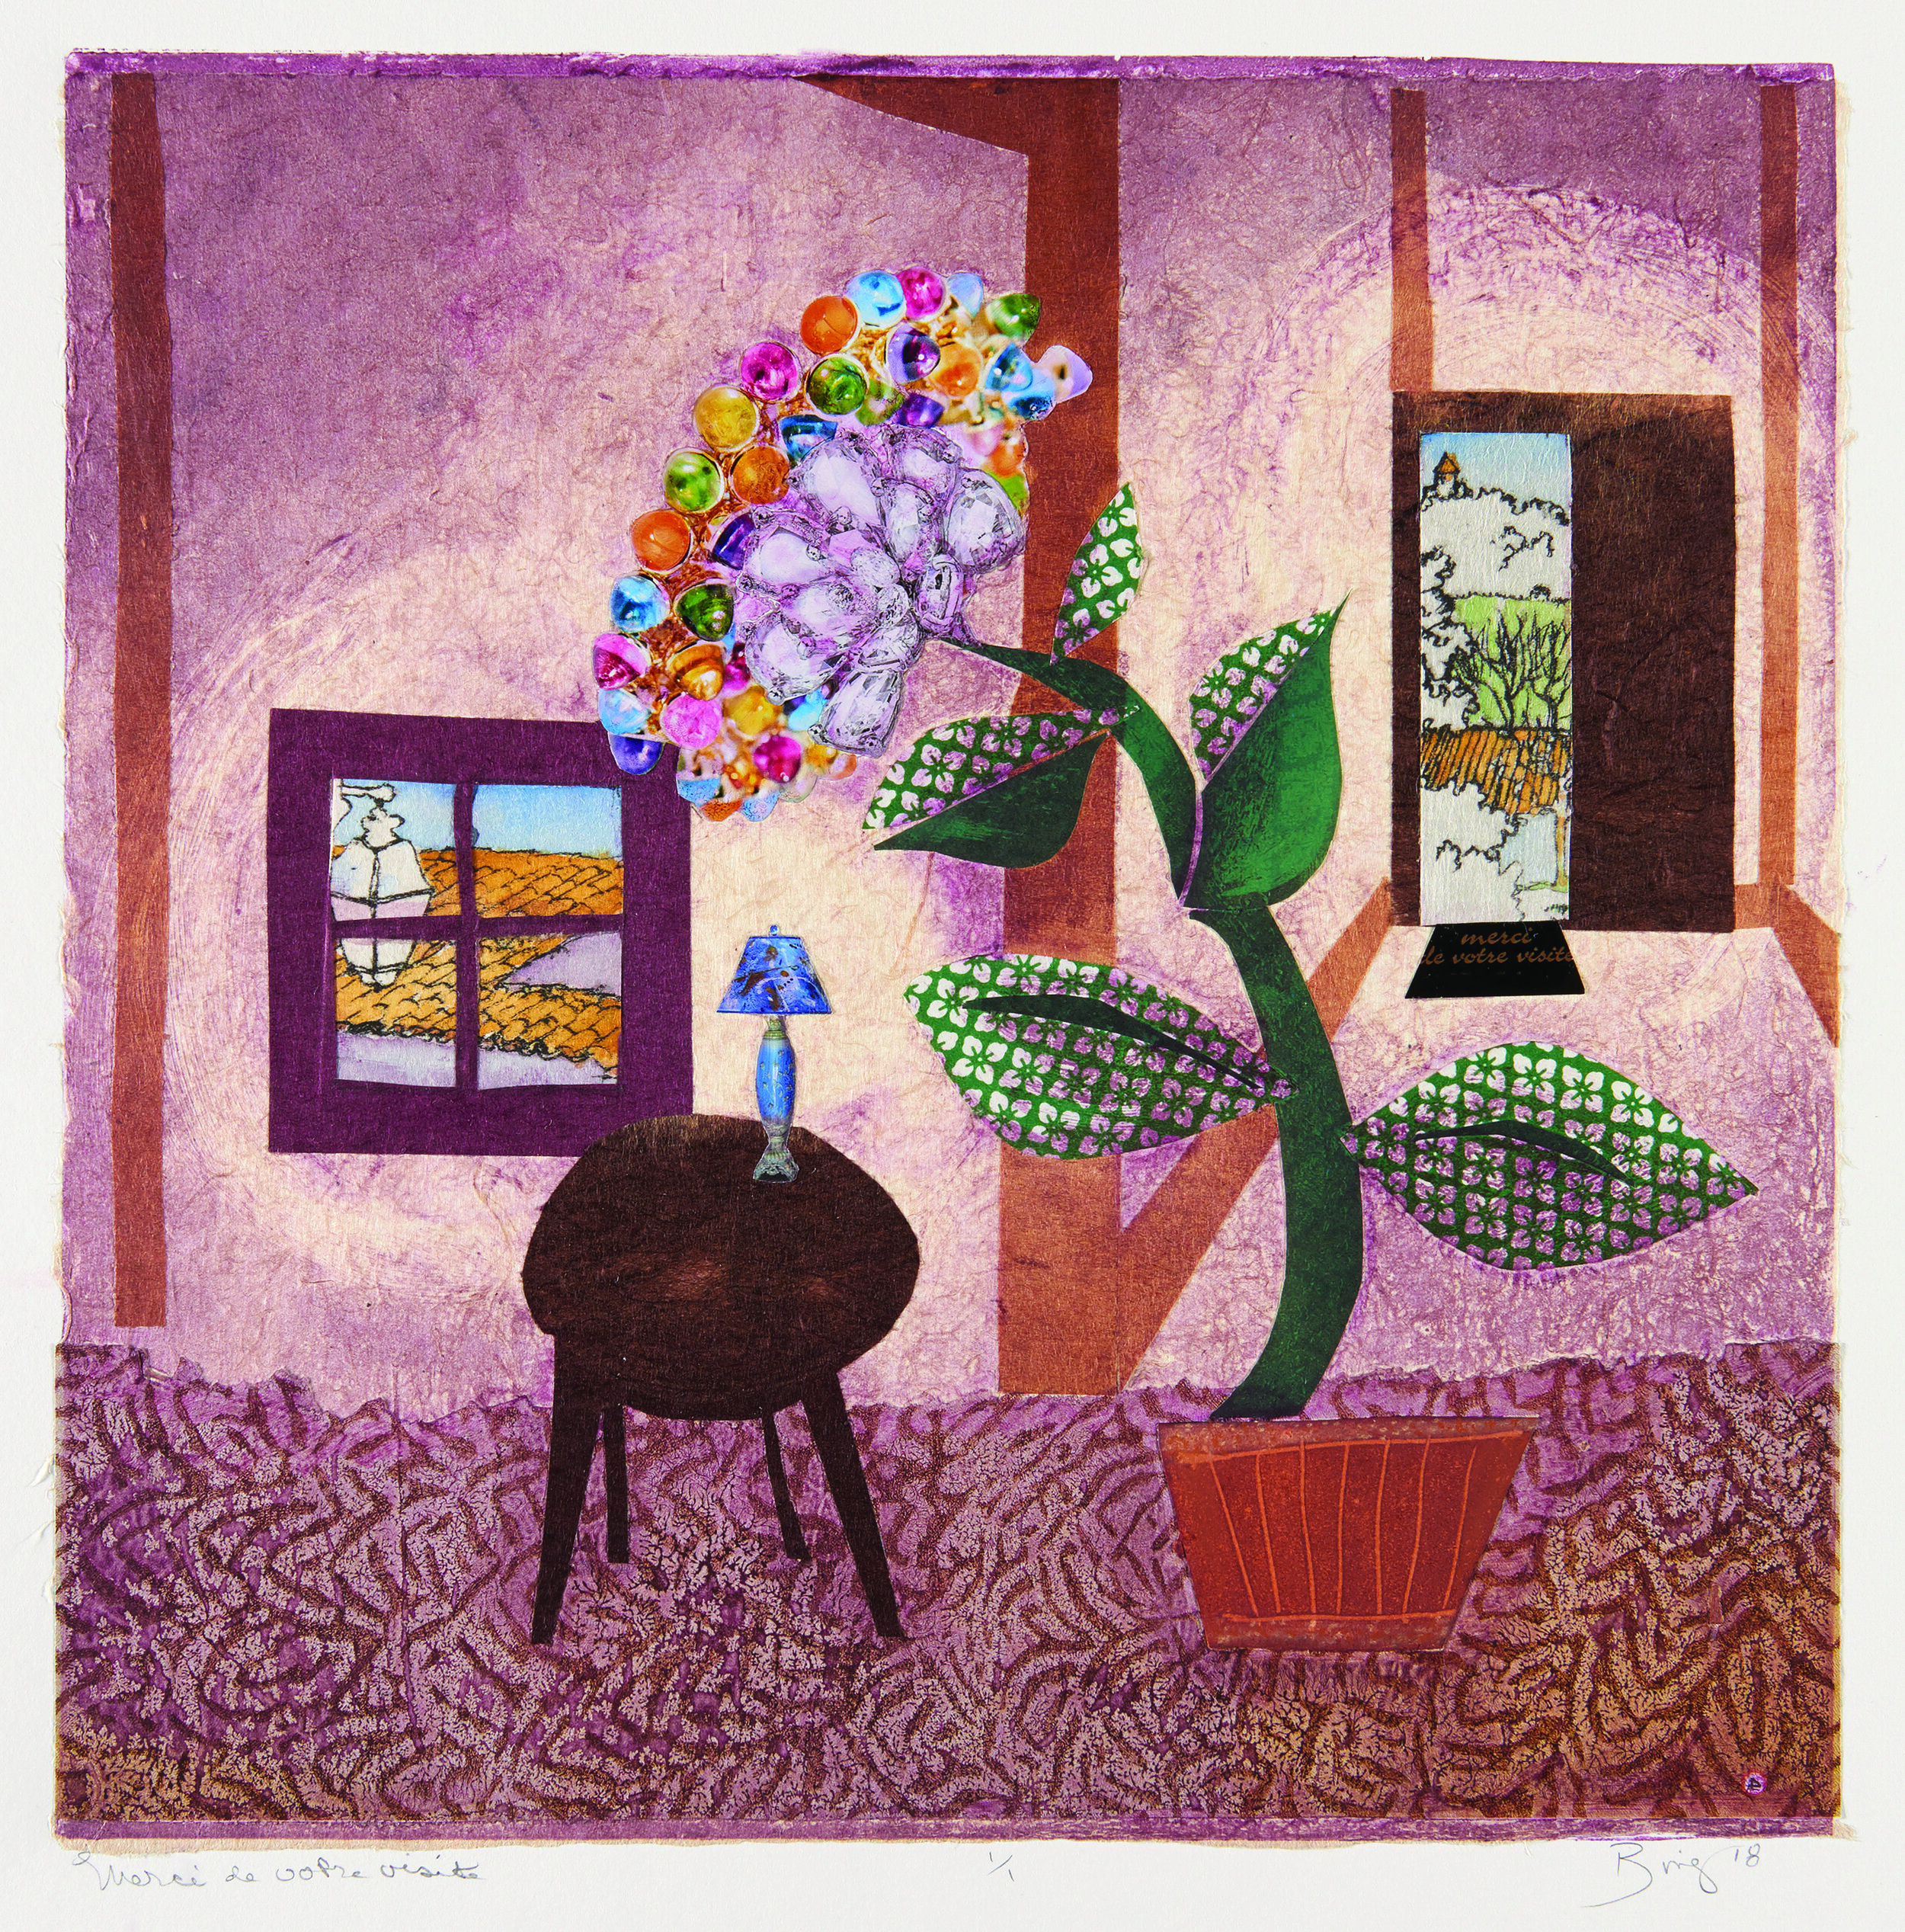 Monotype print of a red room with textured floor, table, flower, windows